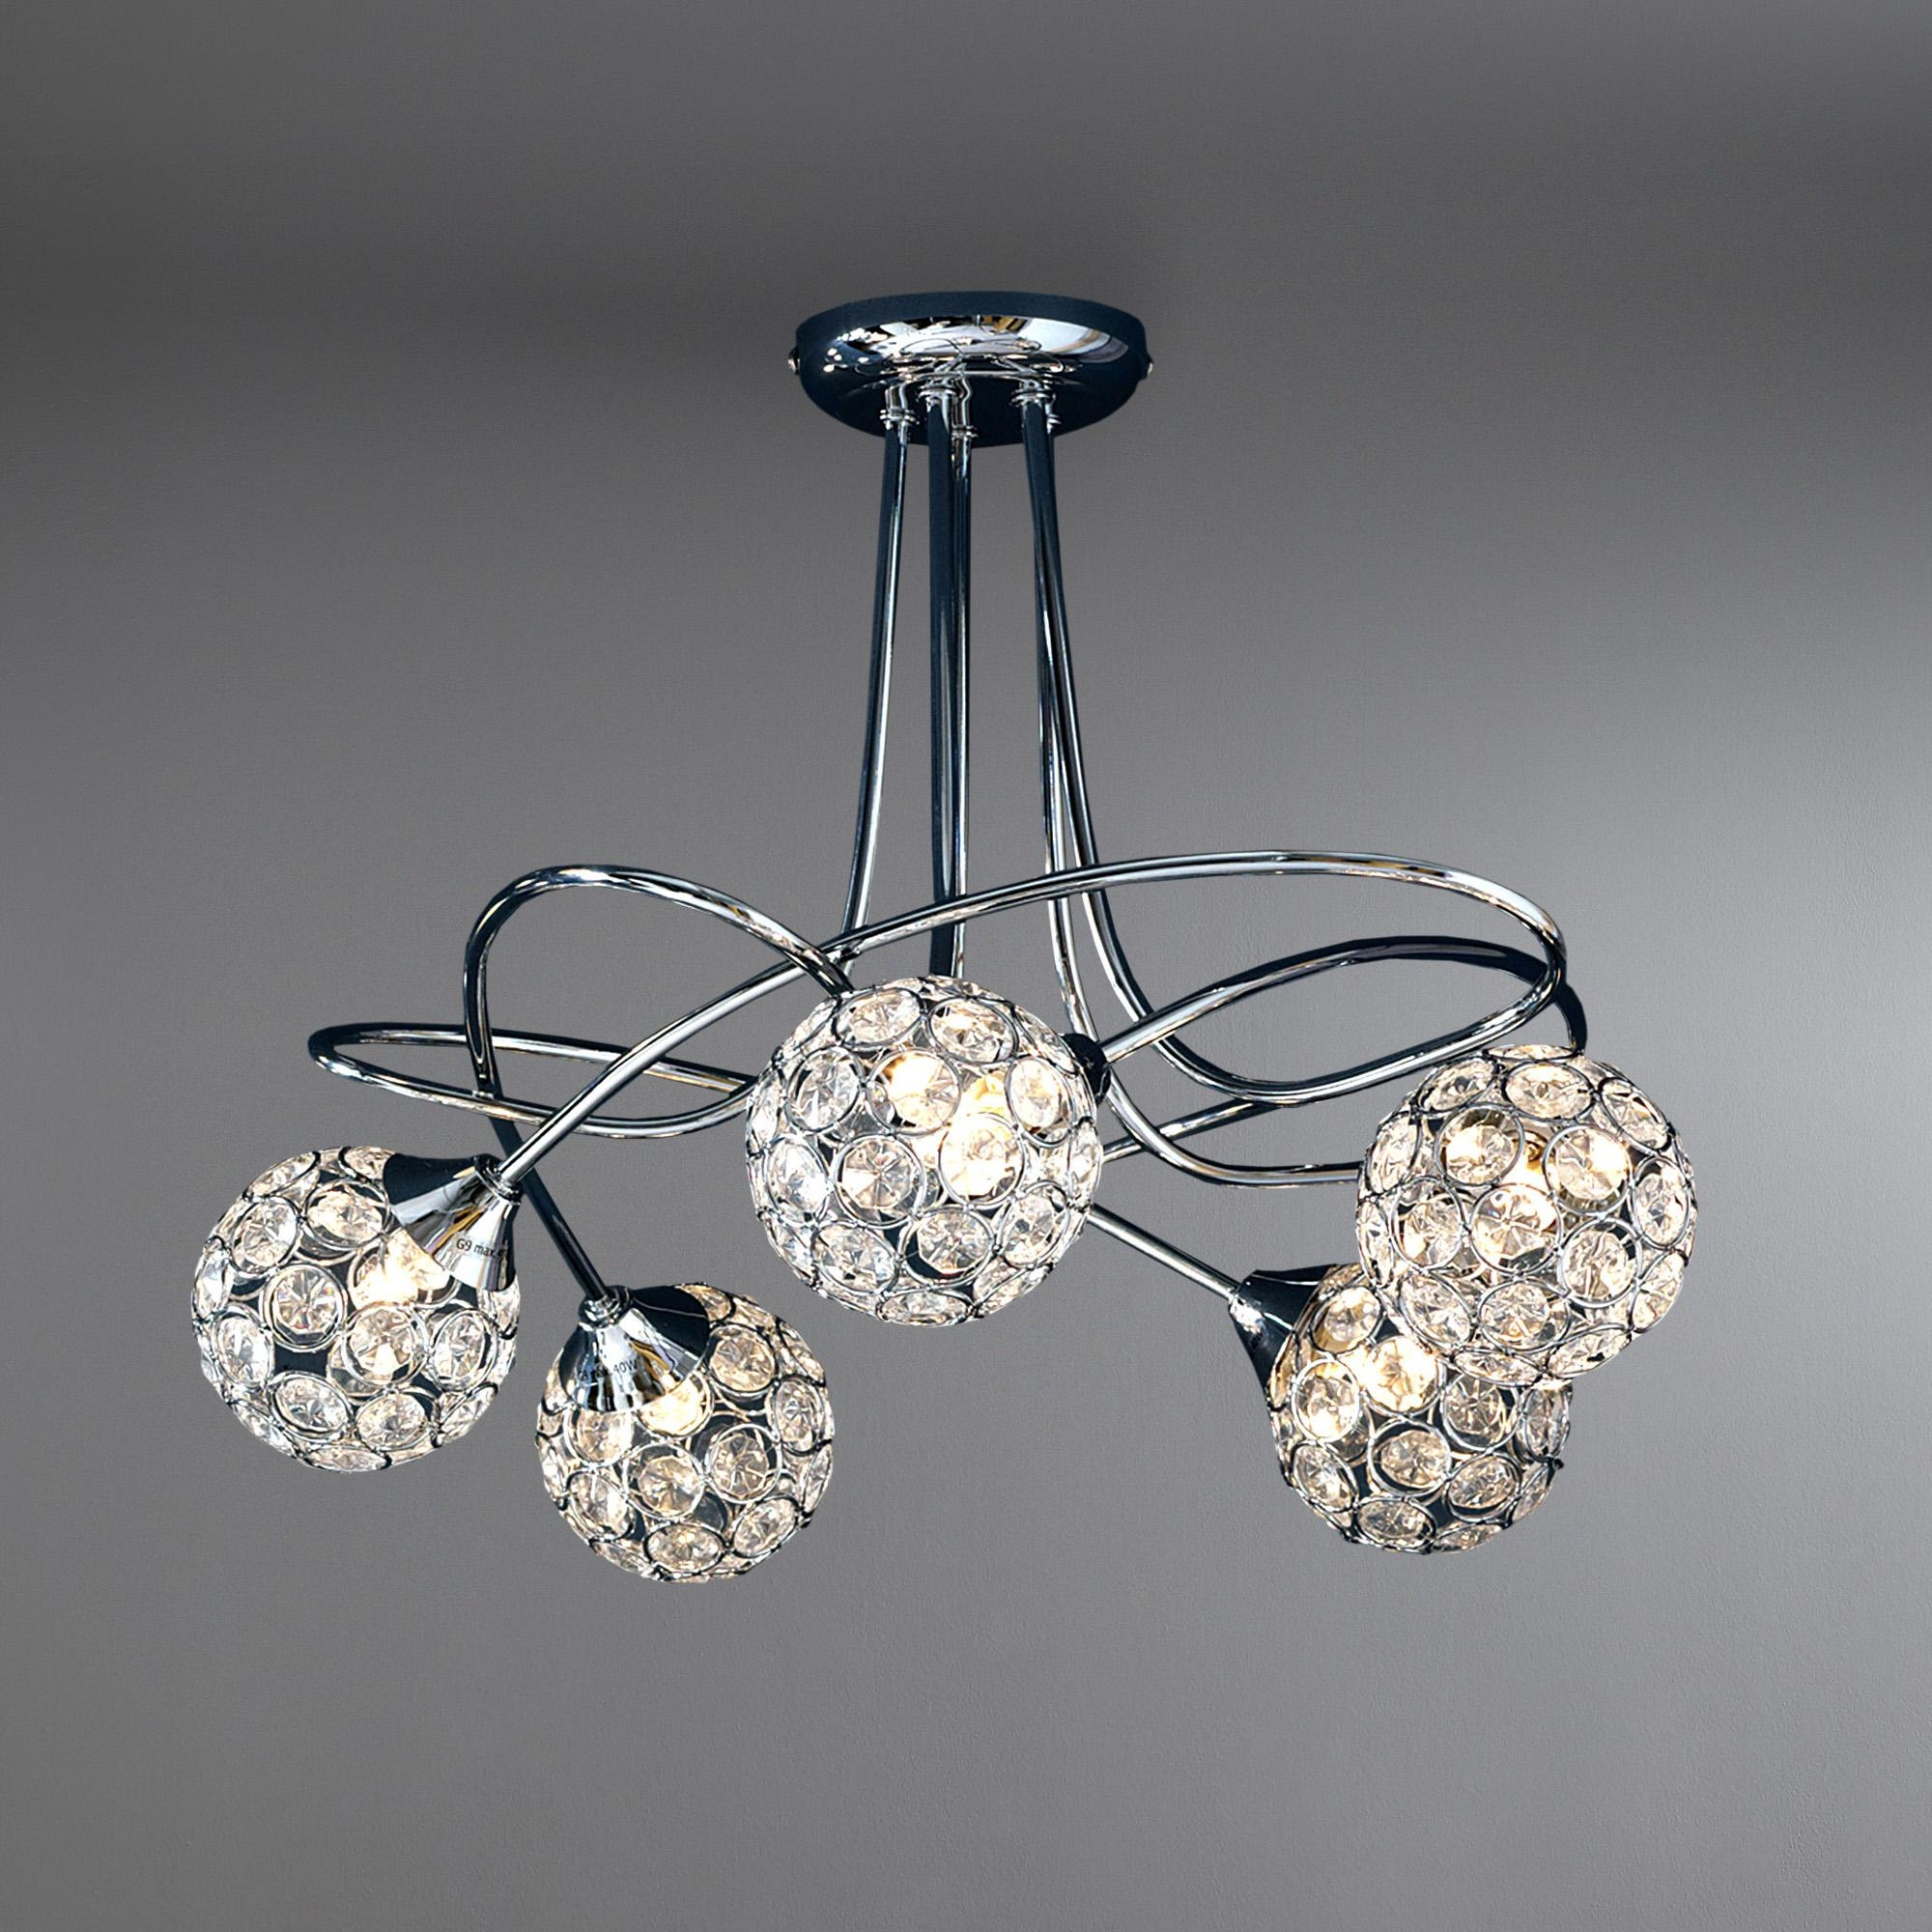 Small Chandeliers For Low Ceilings Home Decor Lighting Ideas Throughout Small Chandeliers For Low Ceilings (Image 14 of 15)